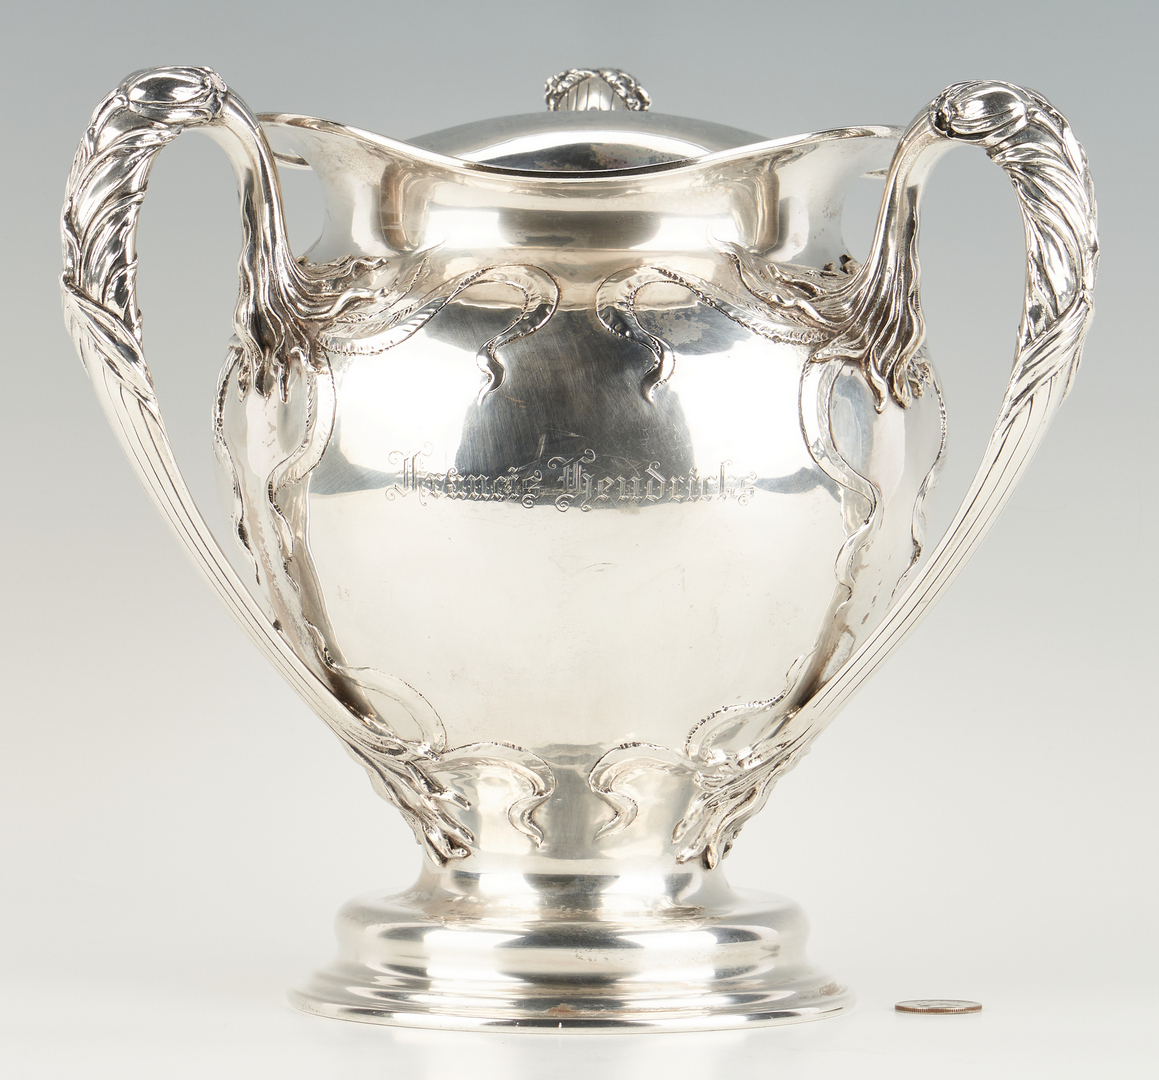 Lot 76: Large Art Nouveau Sterling Loving Cup, Dominick & Haff